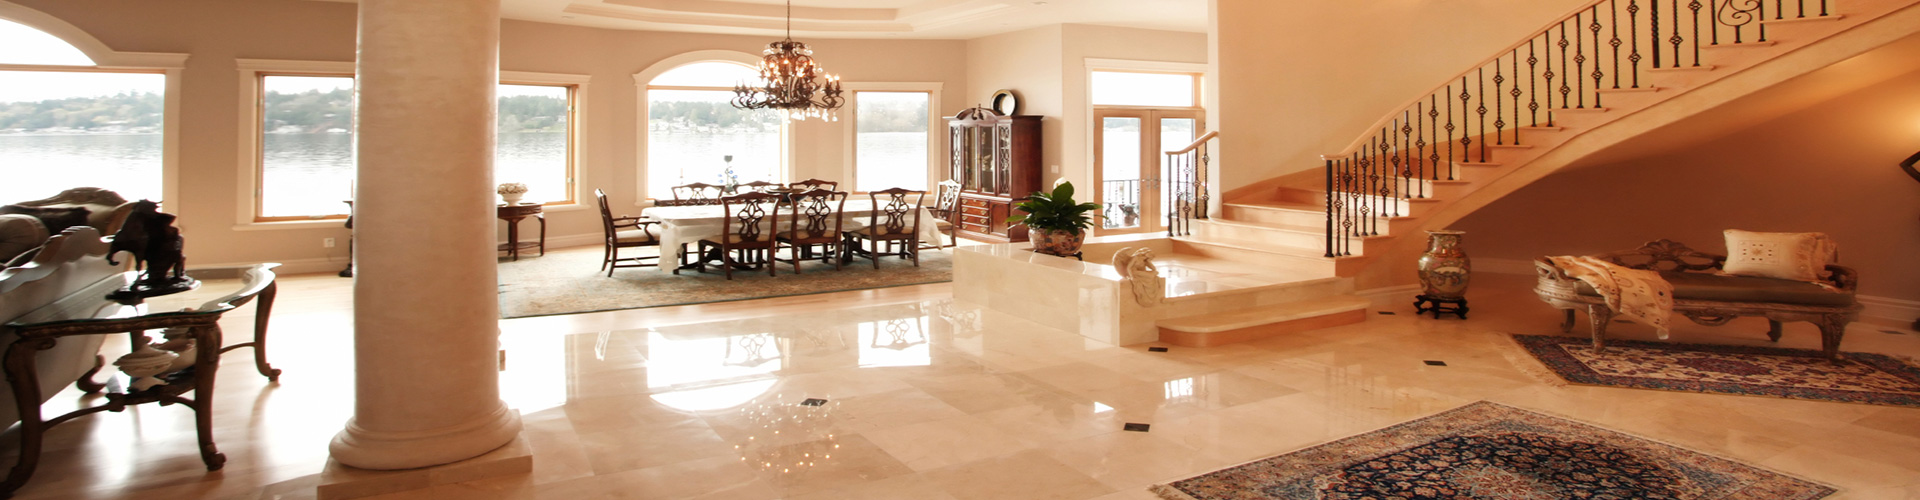 Floor Cleaning Rockford IL